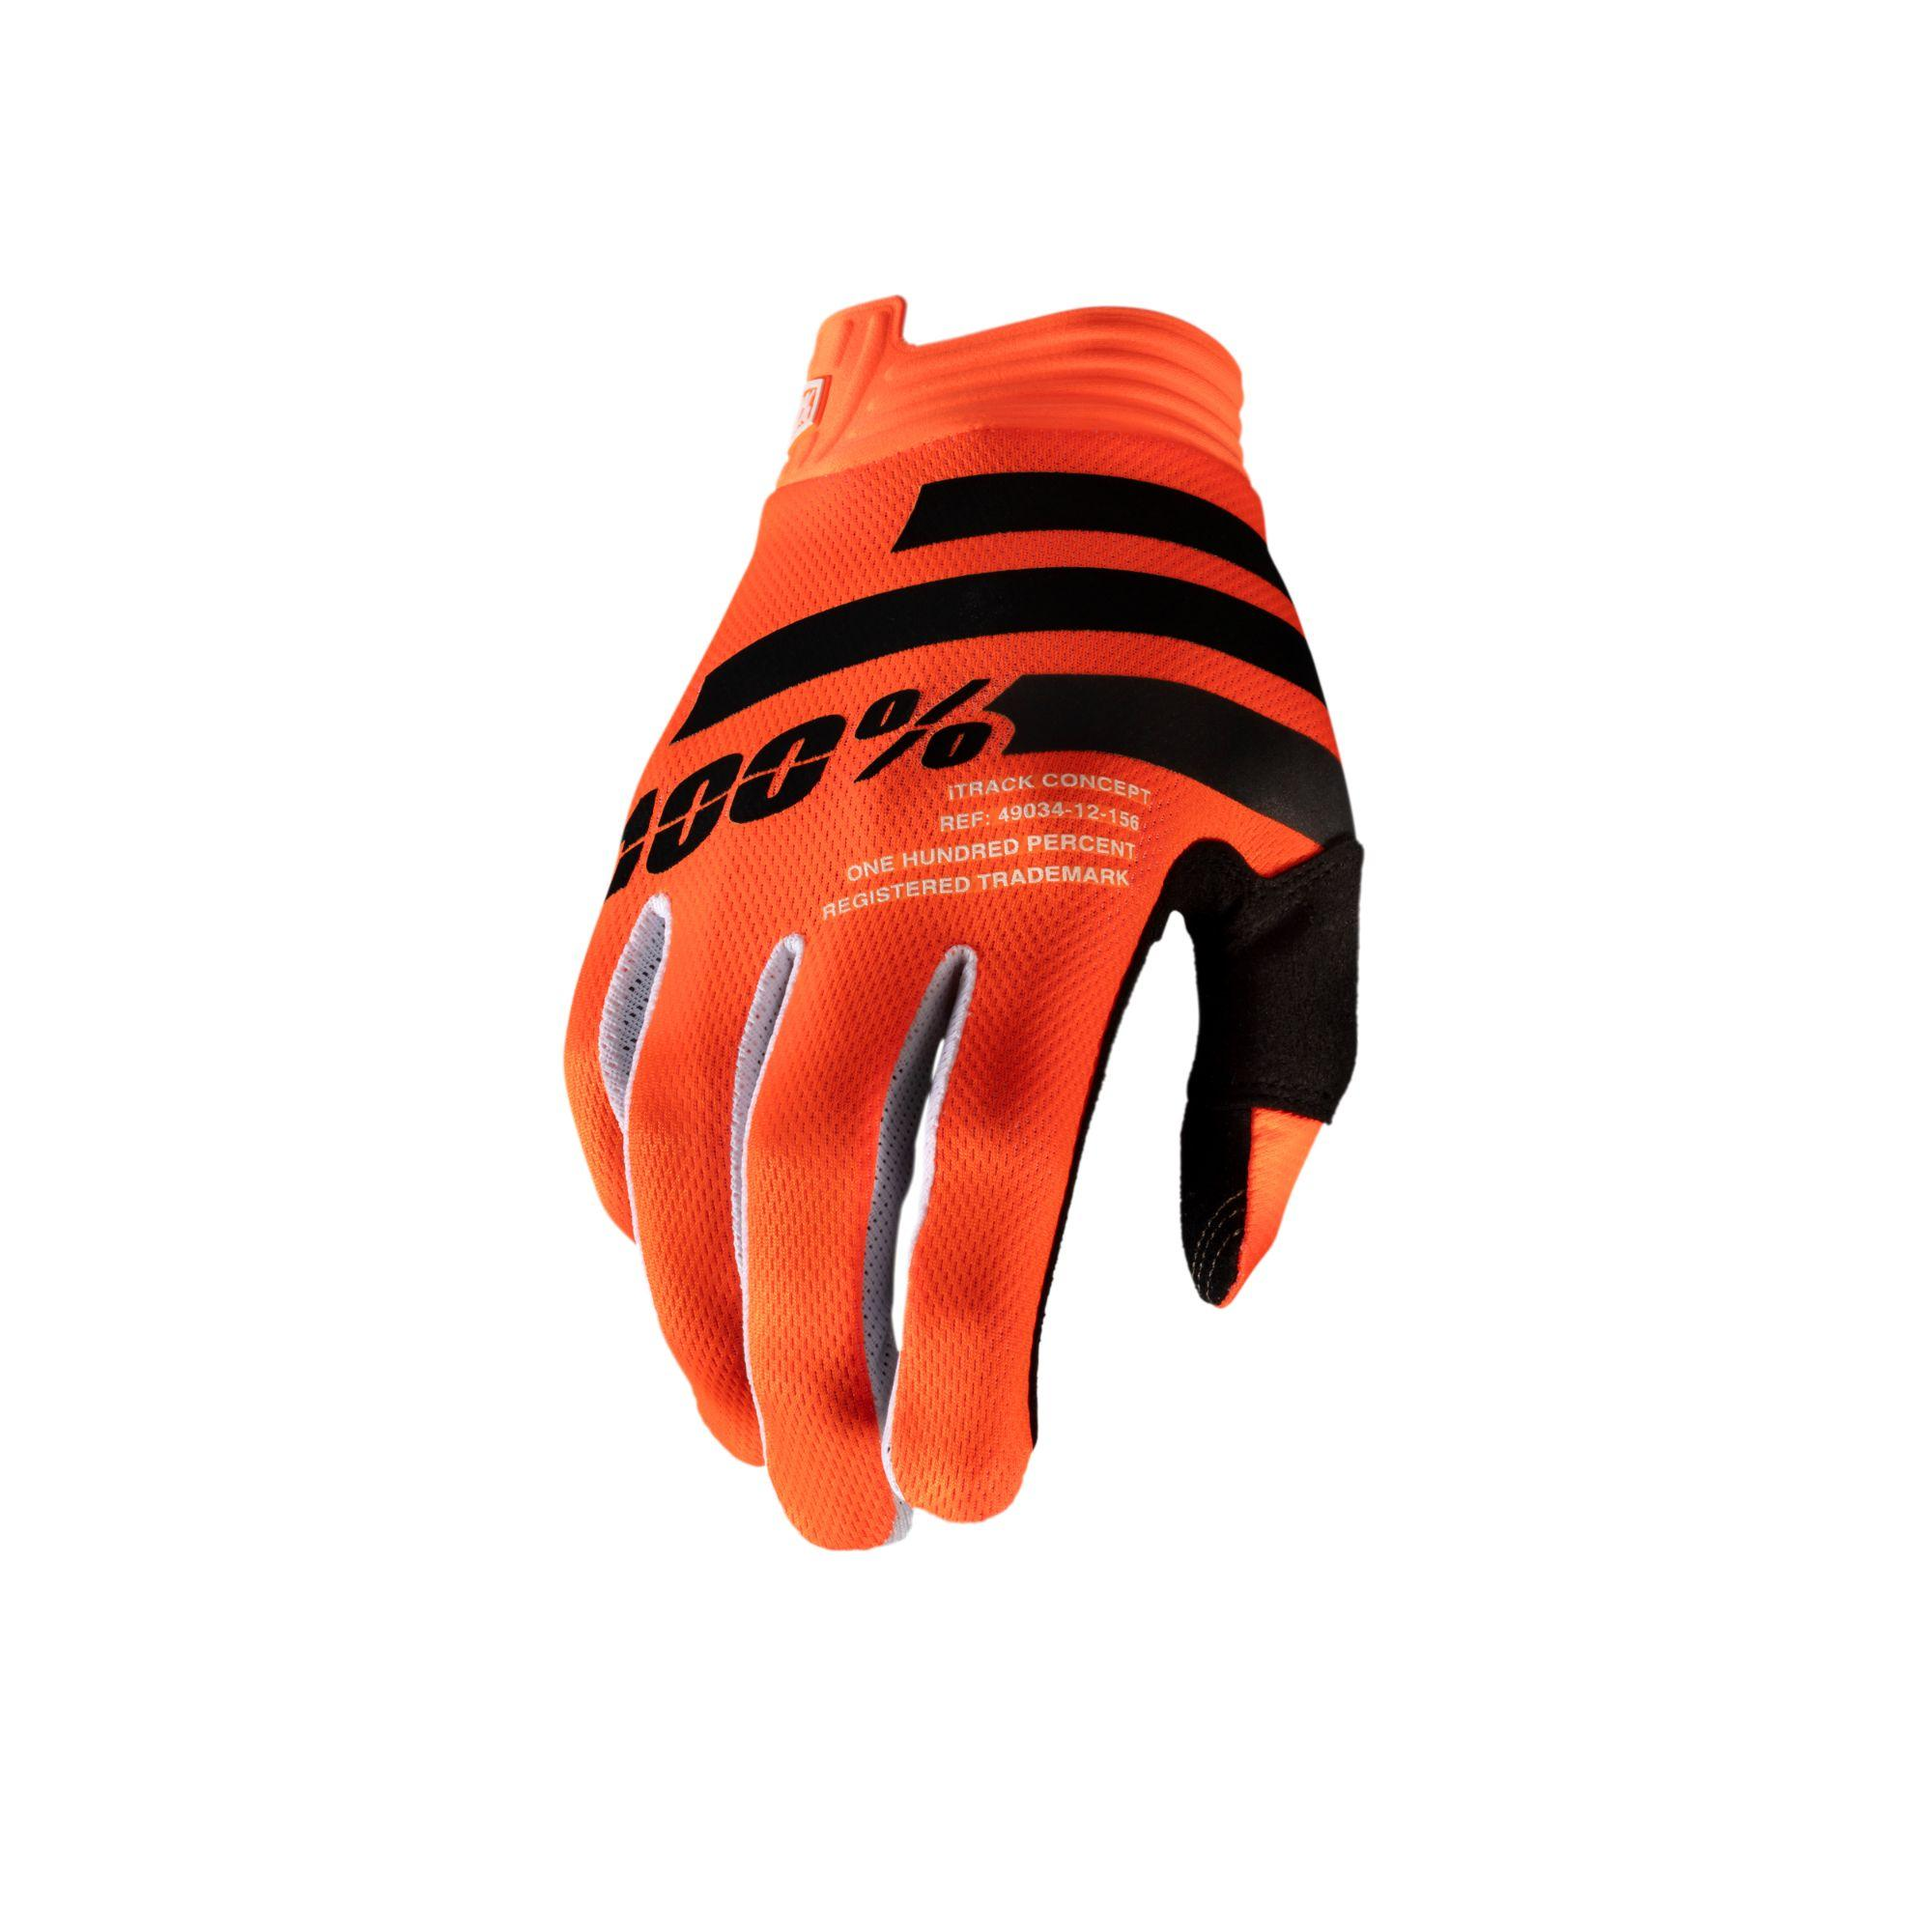 iTRACK Glove Orange/Black